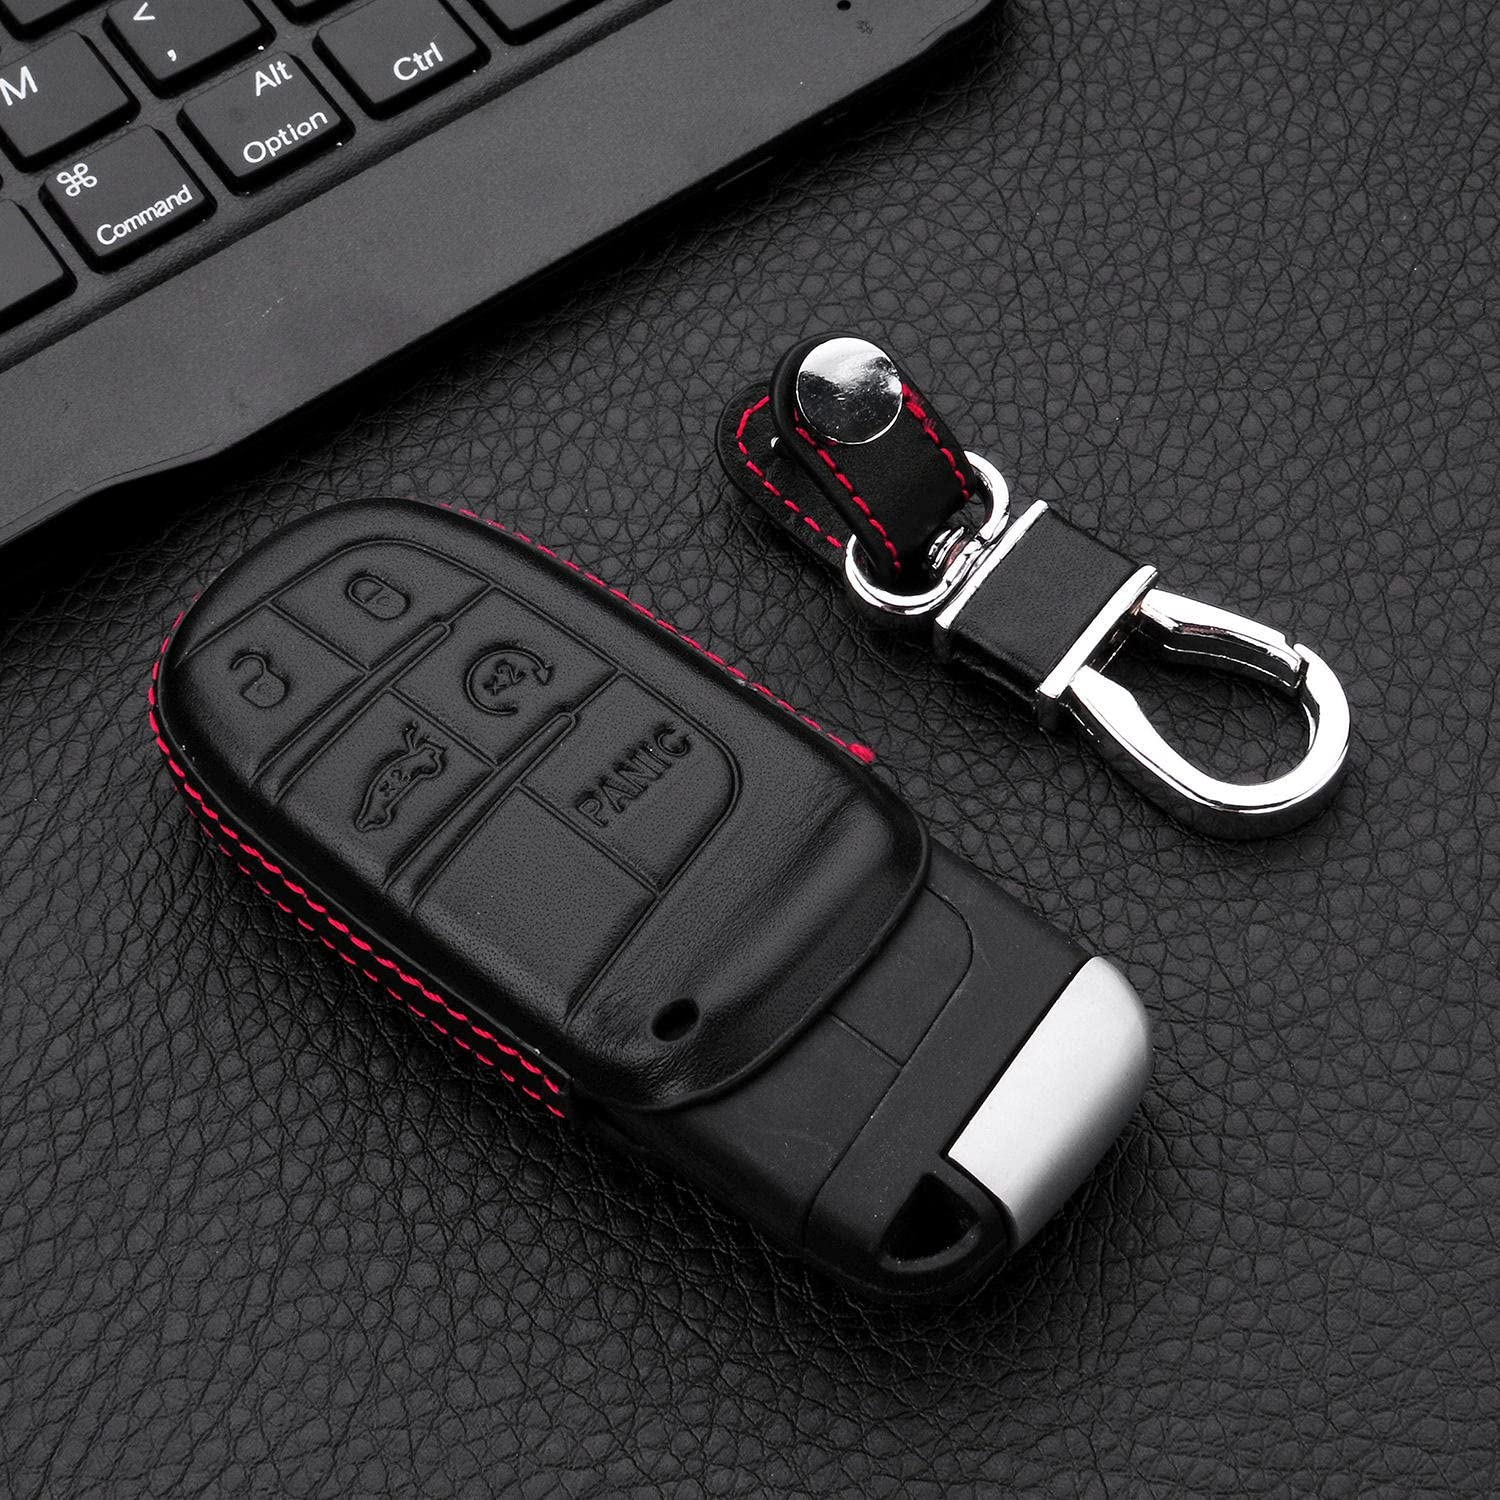 Weave Keychain M.JVisun Soft Silicone Rubber Carbon Fiber Texture Pattern Cover for Jeep//Dodge//Chrysler//Fiat Black Car Remote Key Fob Case for Jeep//Dodge//Chrysler//Fiat Key Fob